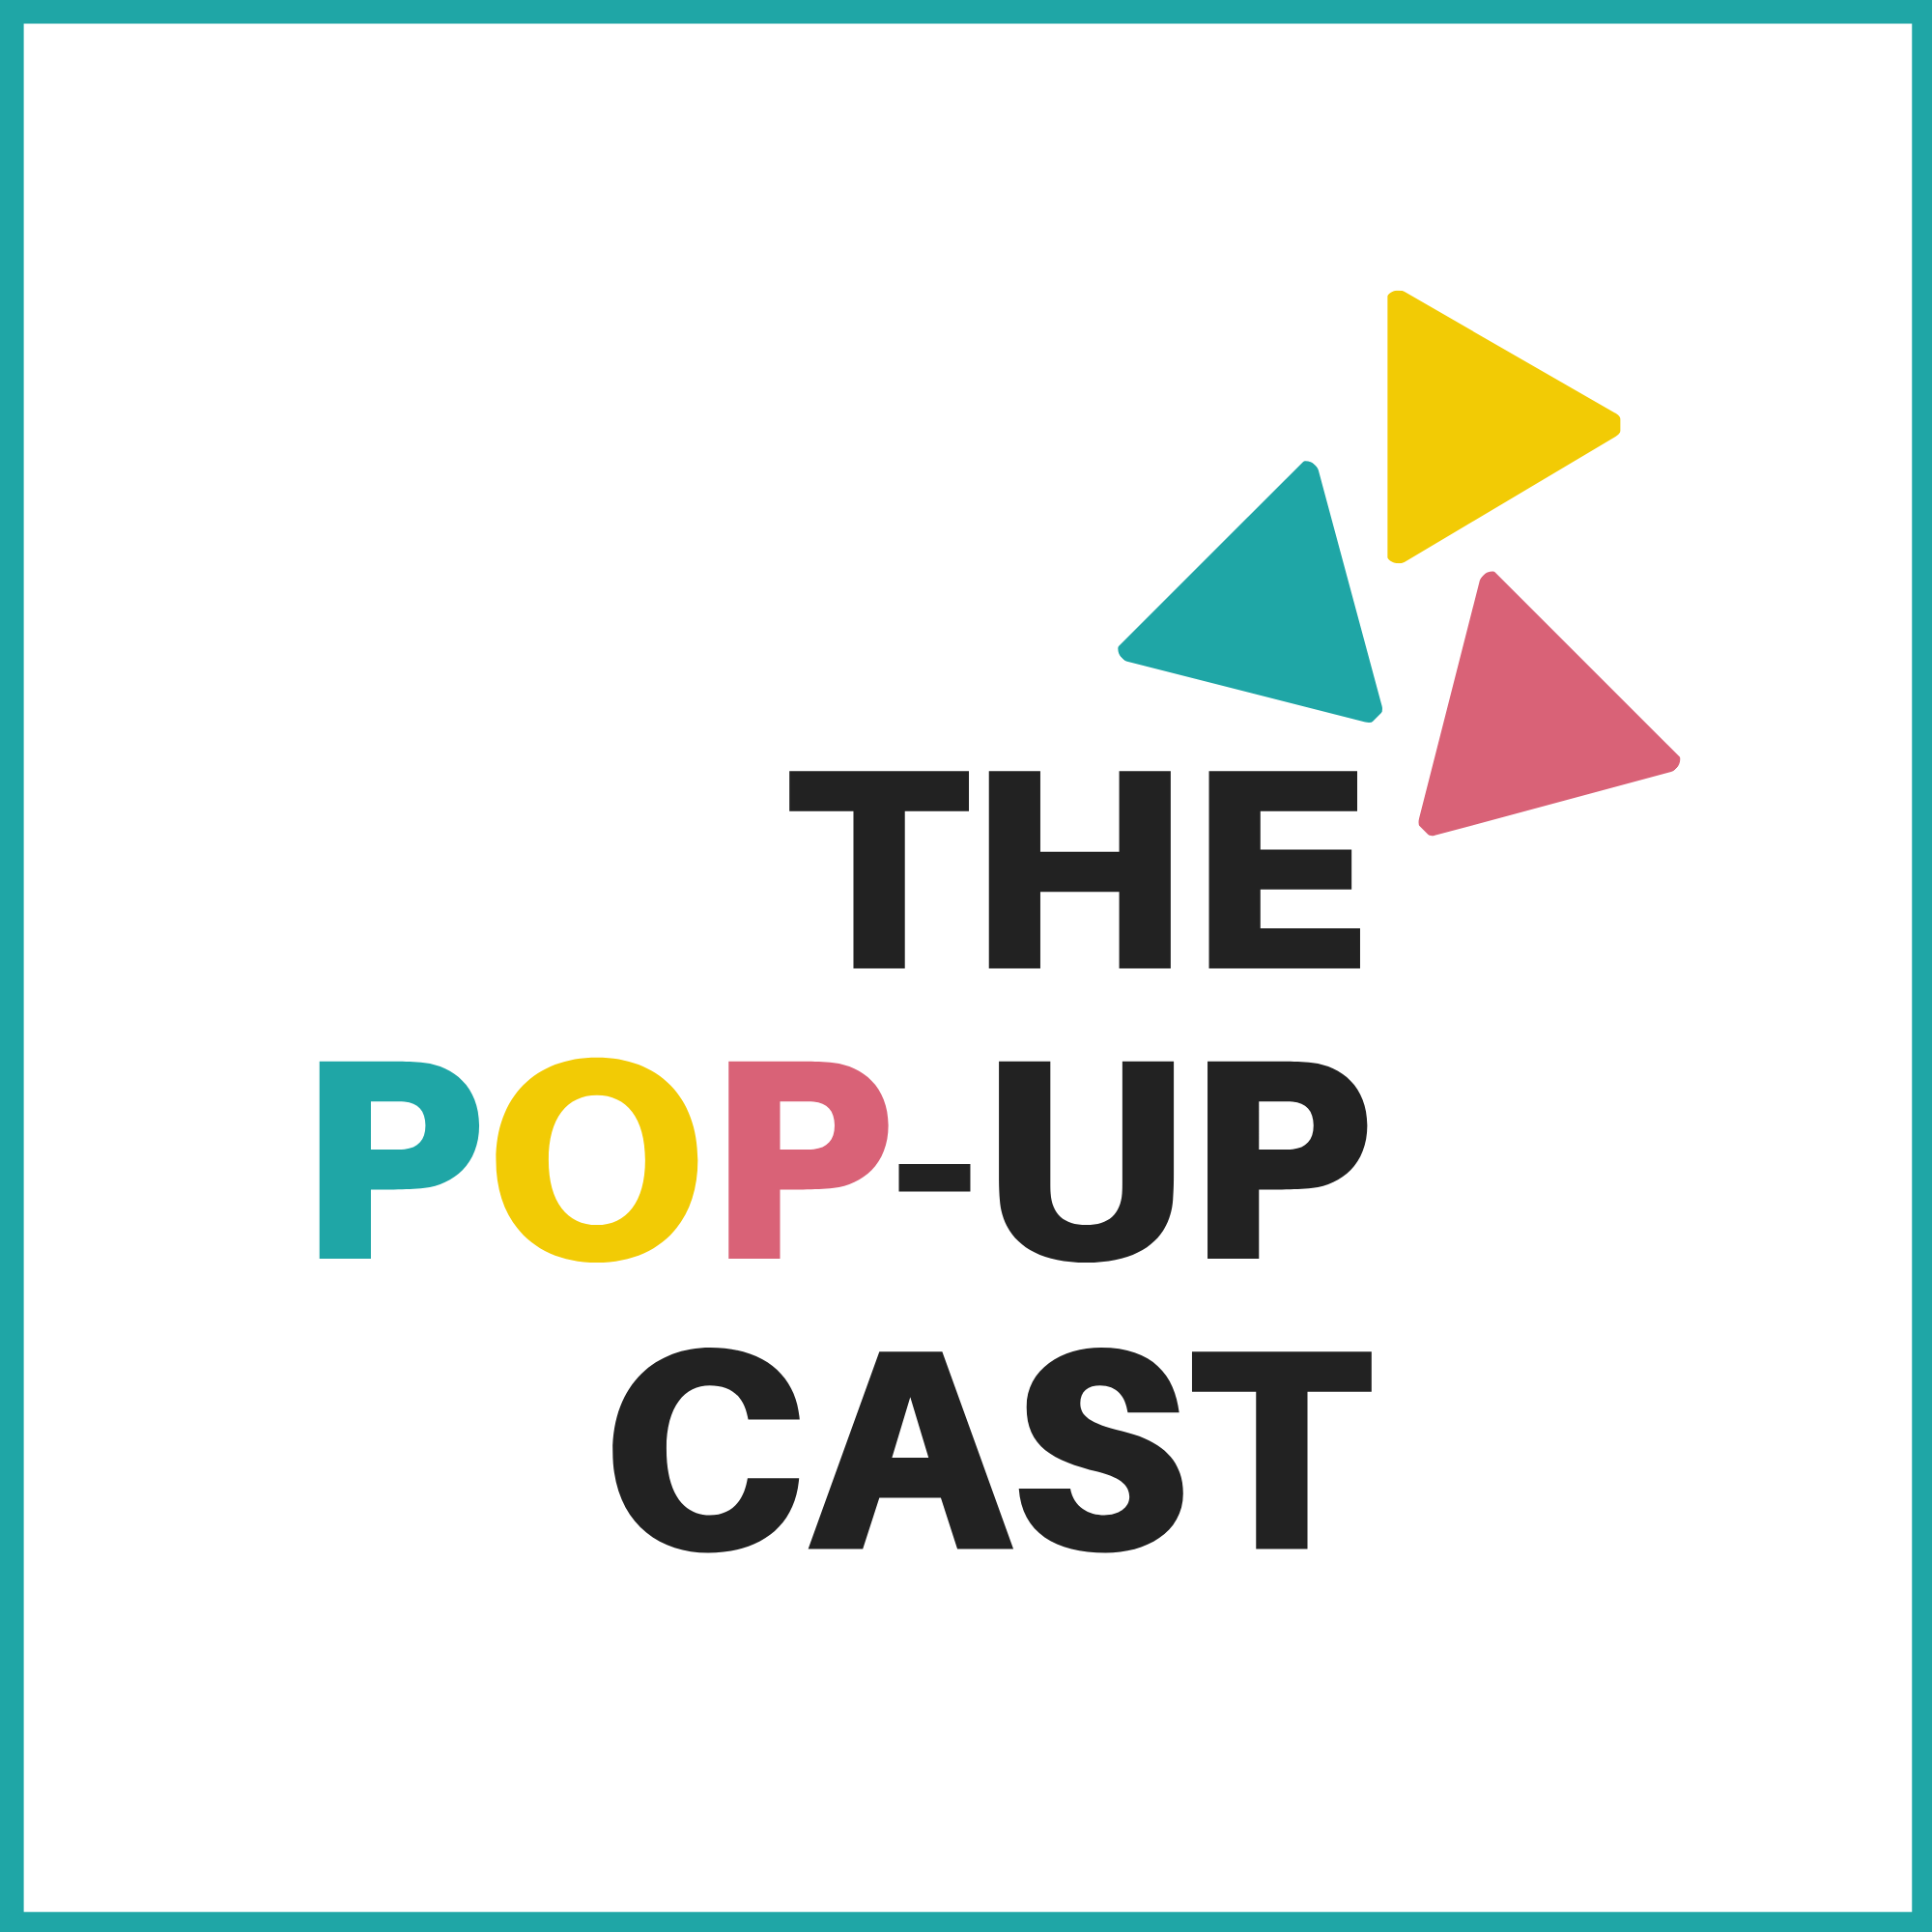 the-pop-up-cast-logo